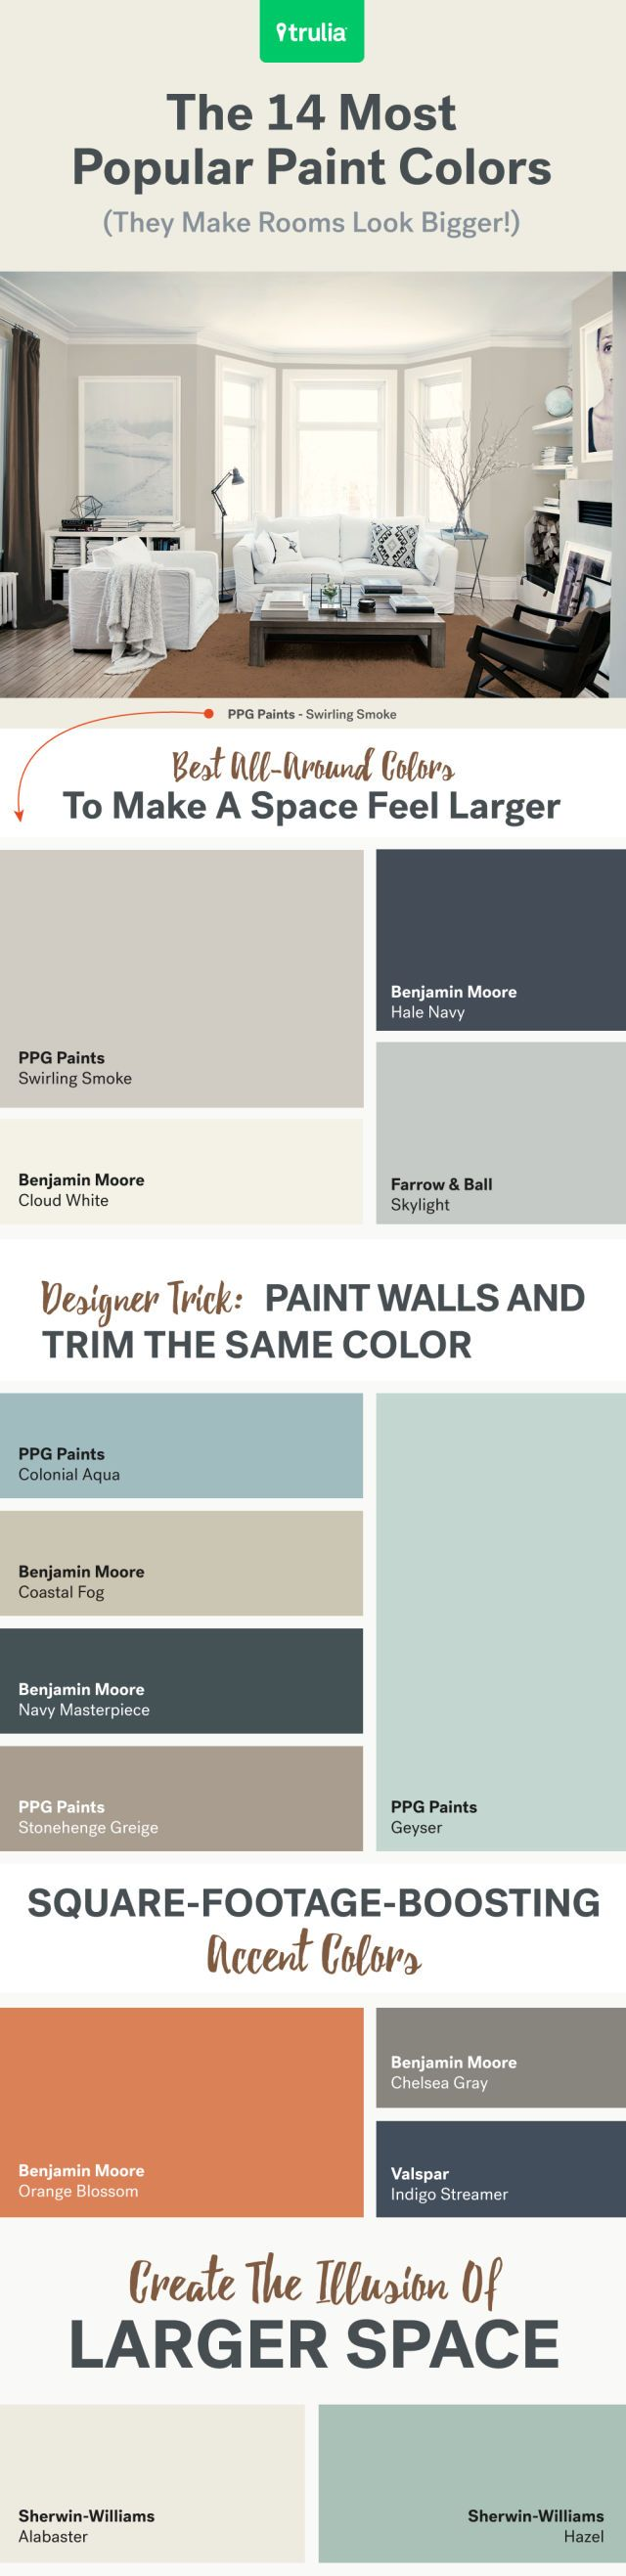 172 best decorate :: paint colors images on Pinterest | Color ...